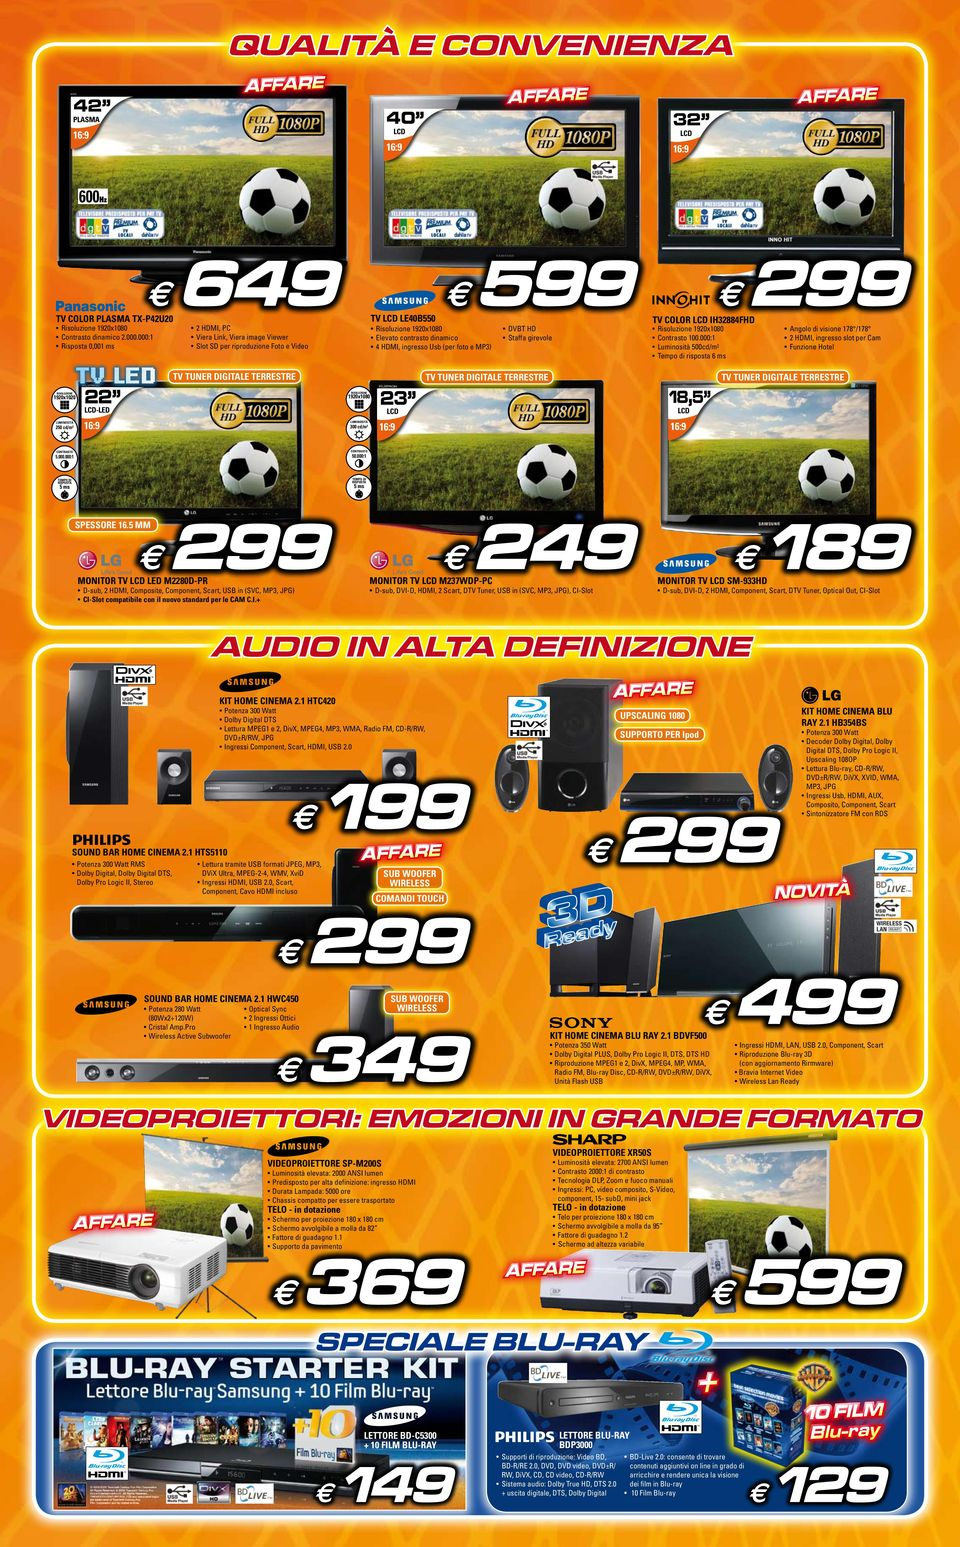 MP3) tv tunr digital trrstr 50 cd/m DVBT HD Staffa girvol 190x1080 TV COLOR IH3884FHD Risoluzion 190x1080 Contrasto 100.000:1 Luminosità 500cd/m Tmpo di risposta 6 ms 300 cd/m contrasto contrasto 5.